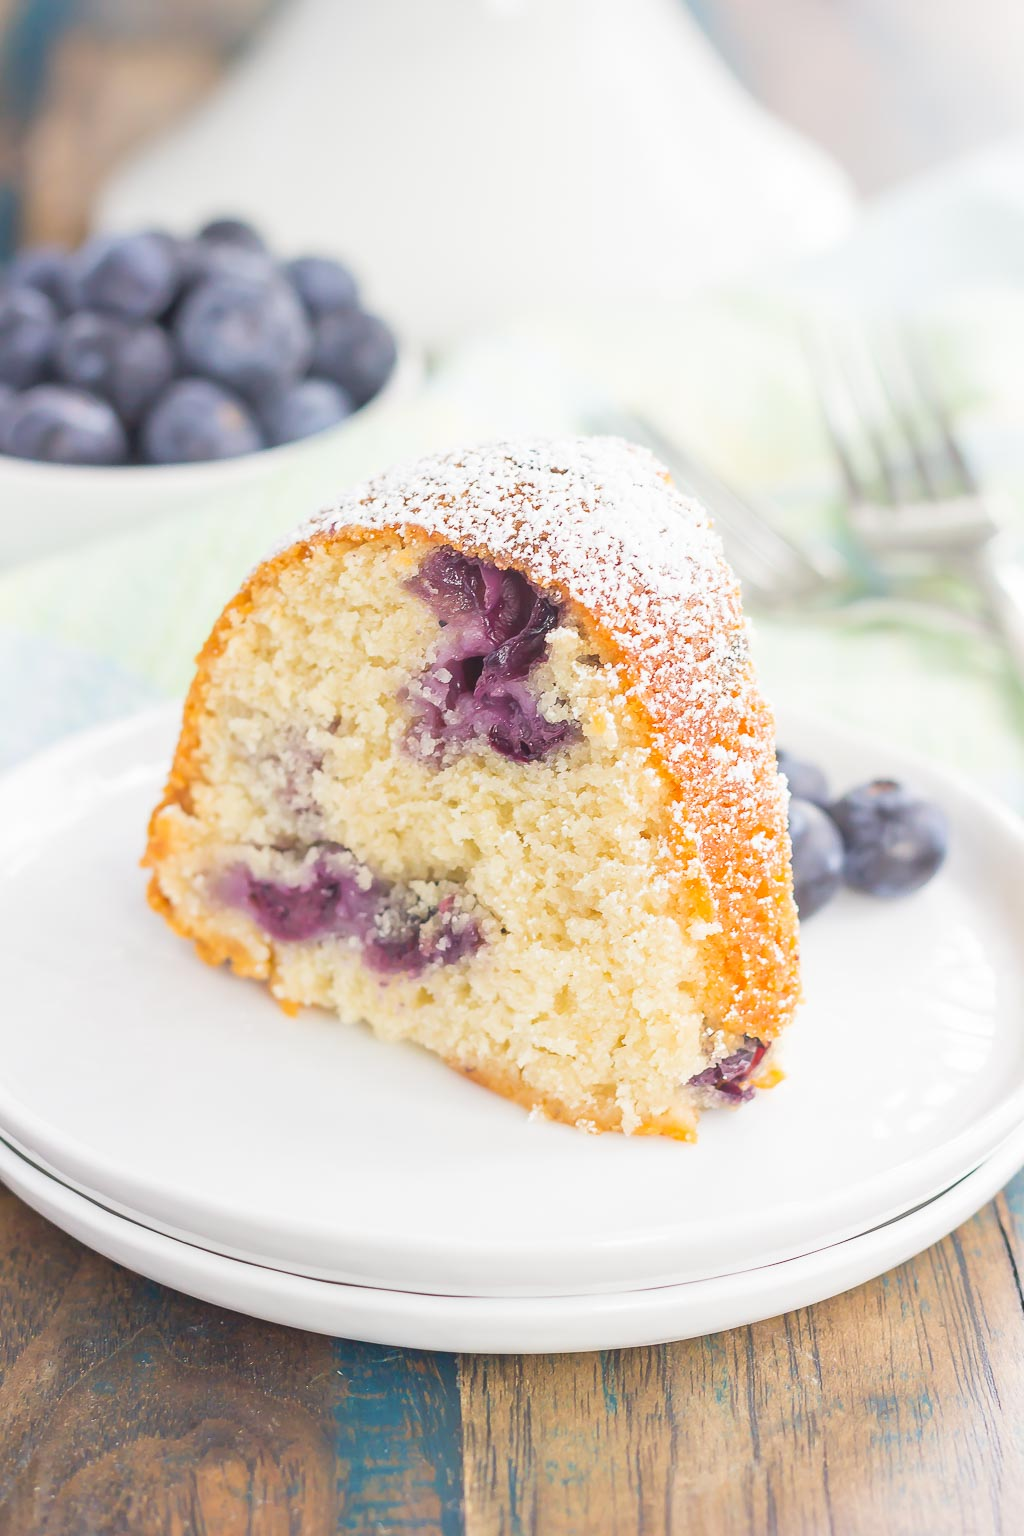 A slice of blueberry yogurt cake on a white plate. A dish of blueberries rest in the background.